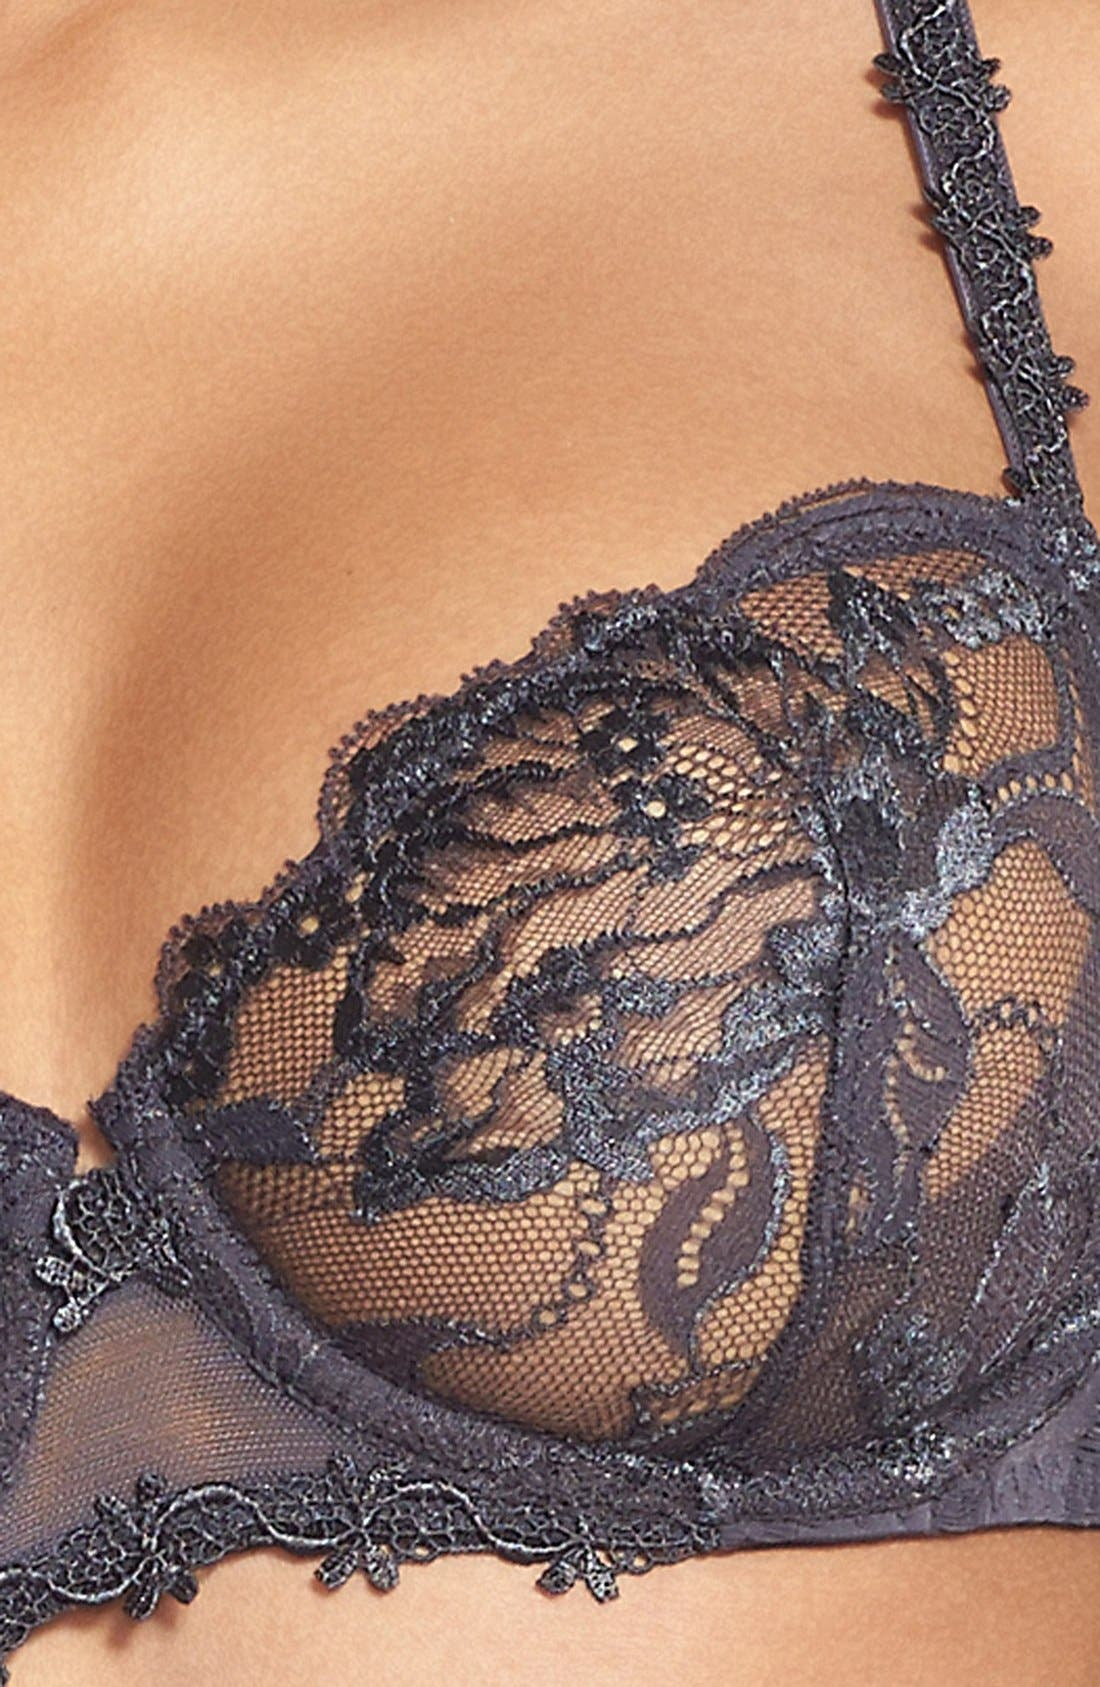 'Amour' Underwire Demi Bra,                             Alternate thumbnail 24, color,